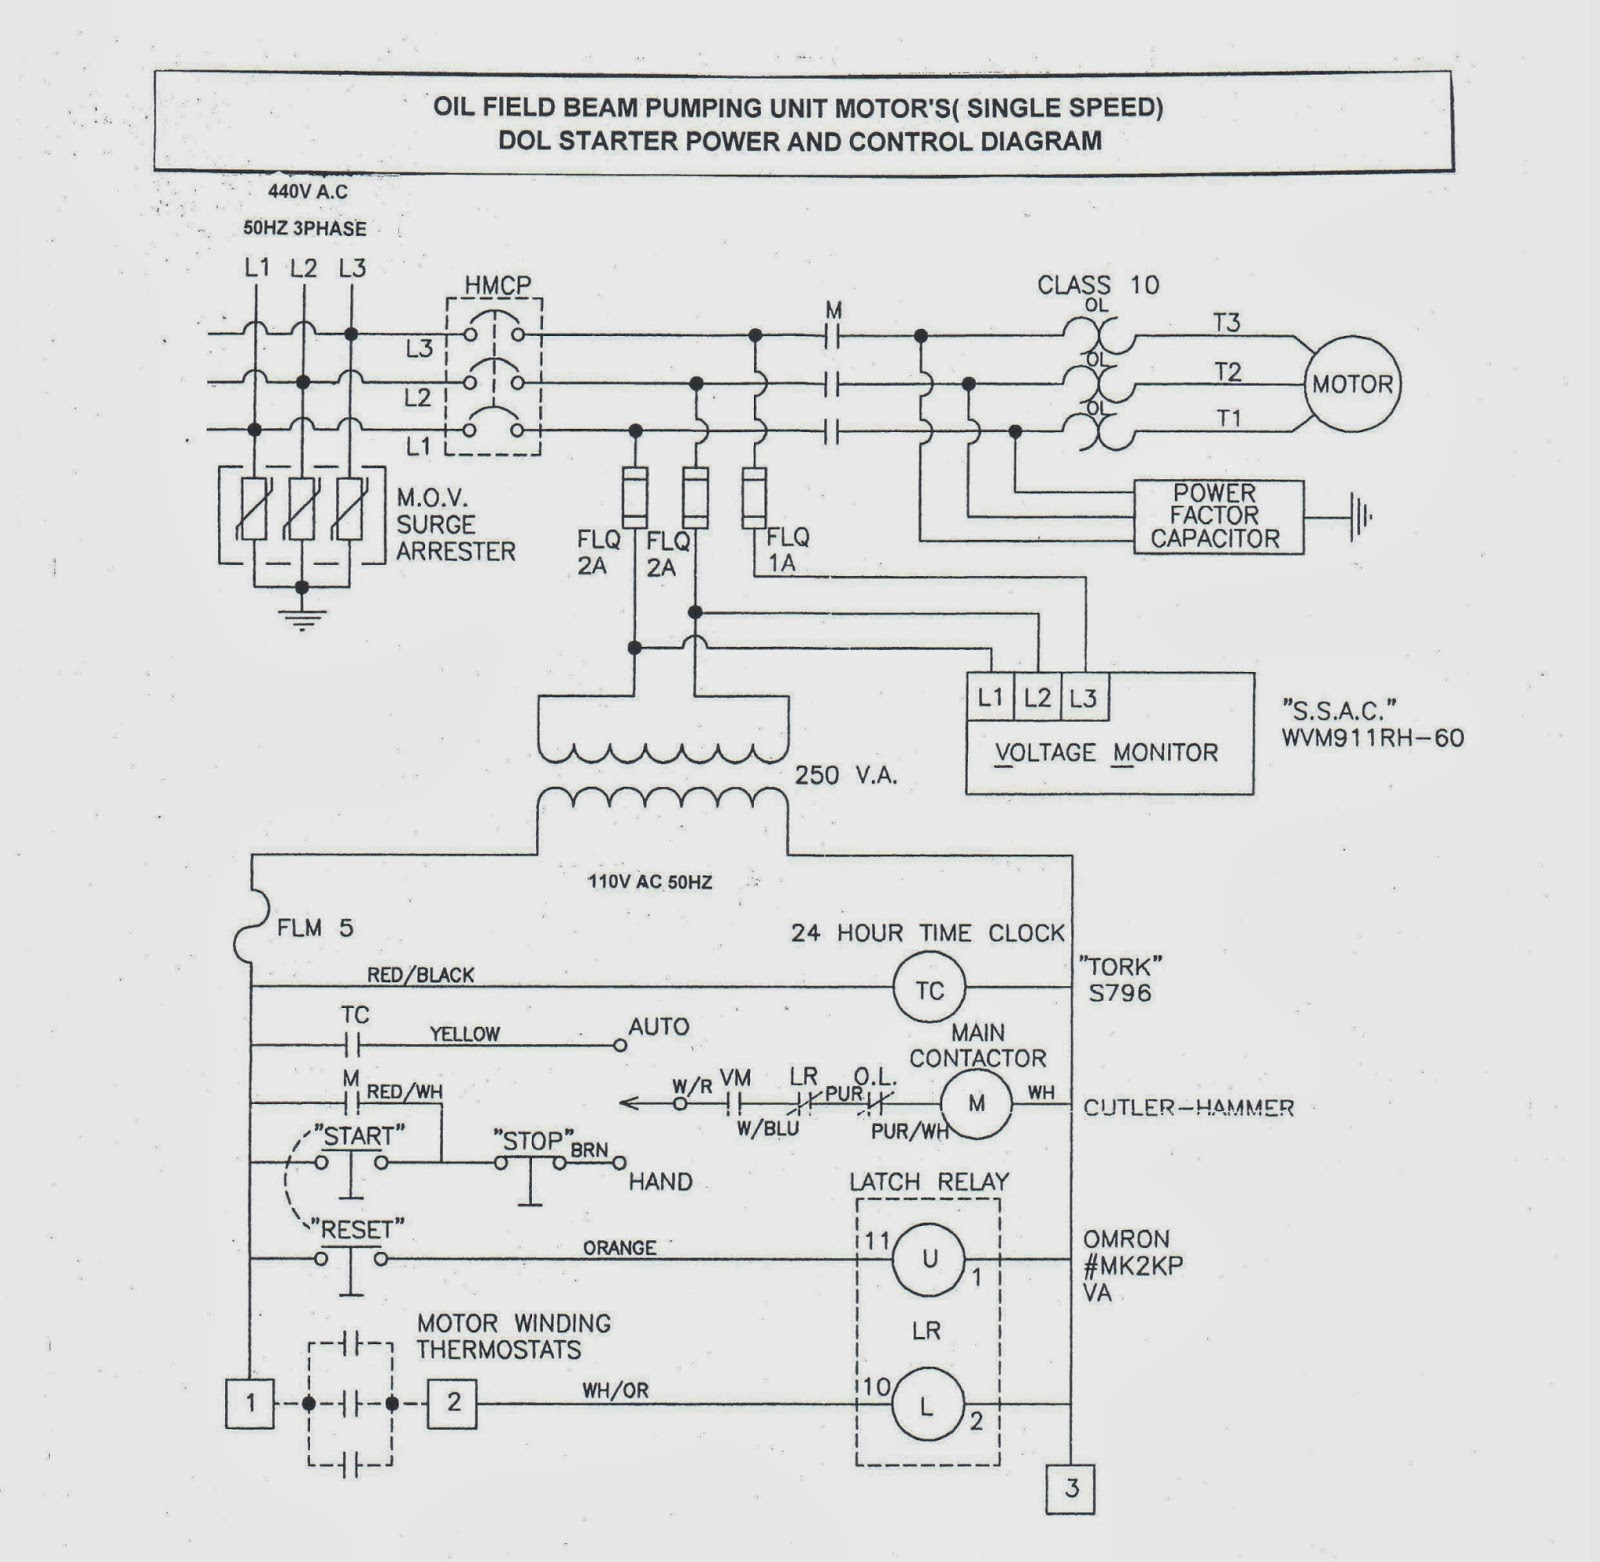 oilfield wiring diagrams wiring free printable wiring diagrams